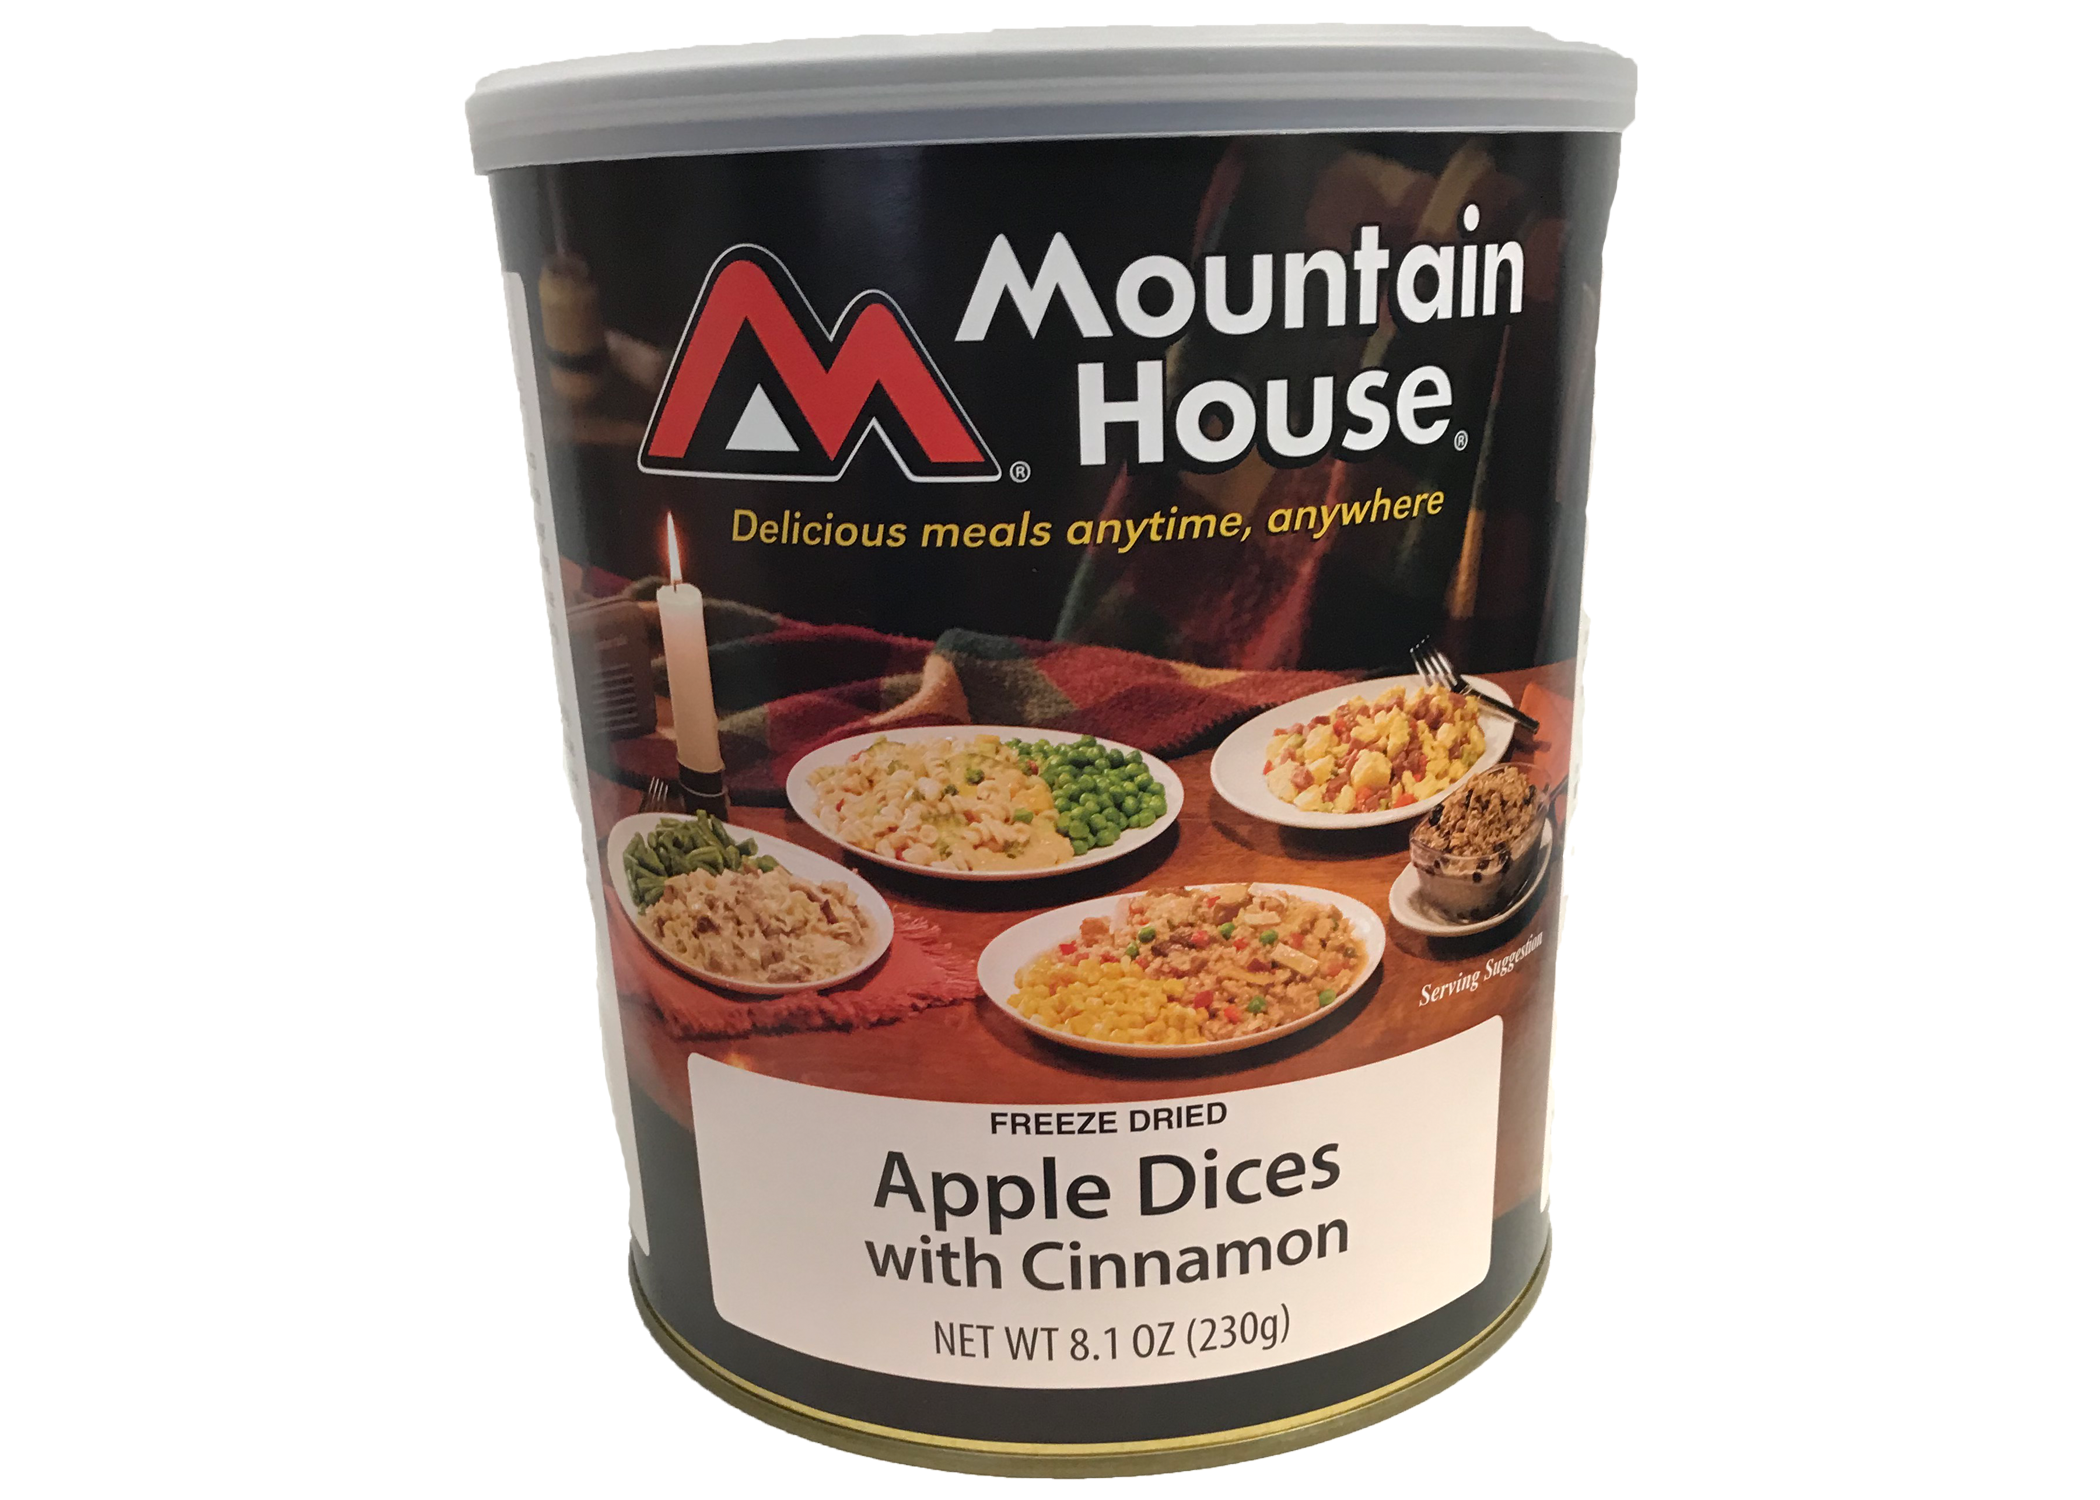 99911118 - Mountain House Number 10 Can Cinnamon Apple Dices